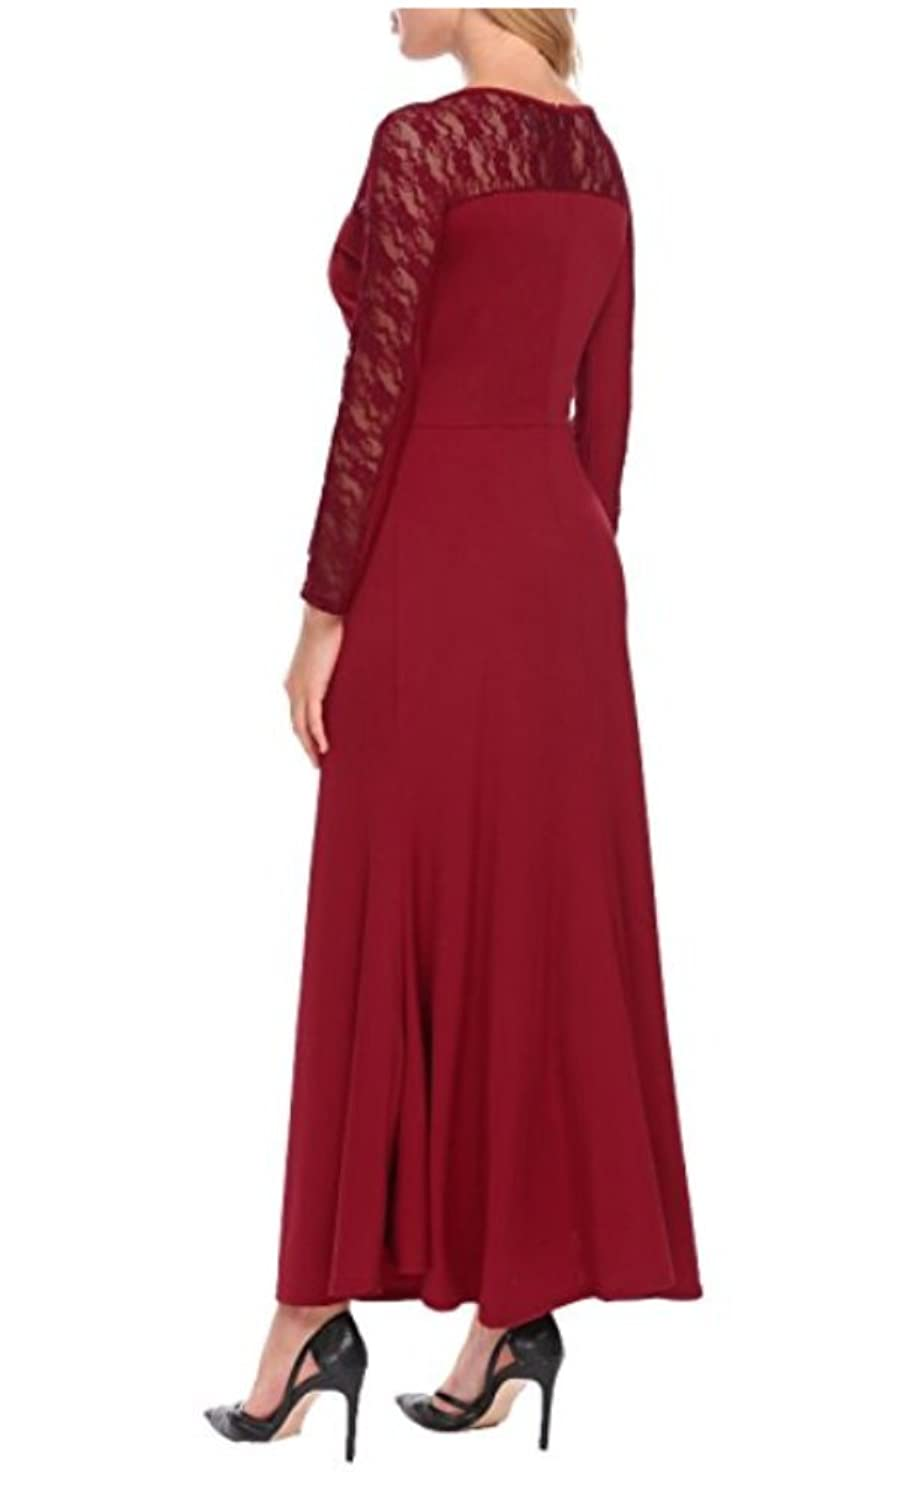 NewFex Womens Beaded High Low Prom Dress Tulle Chiffon Bridesmaid Evening Gown at Amazon Womens Clothing store: